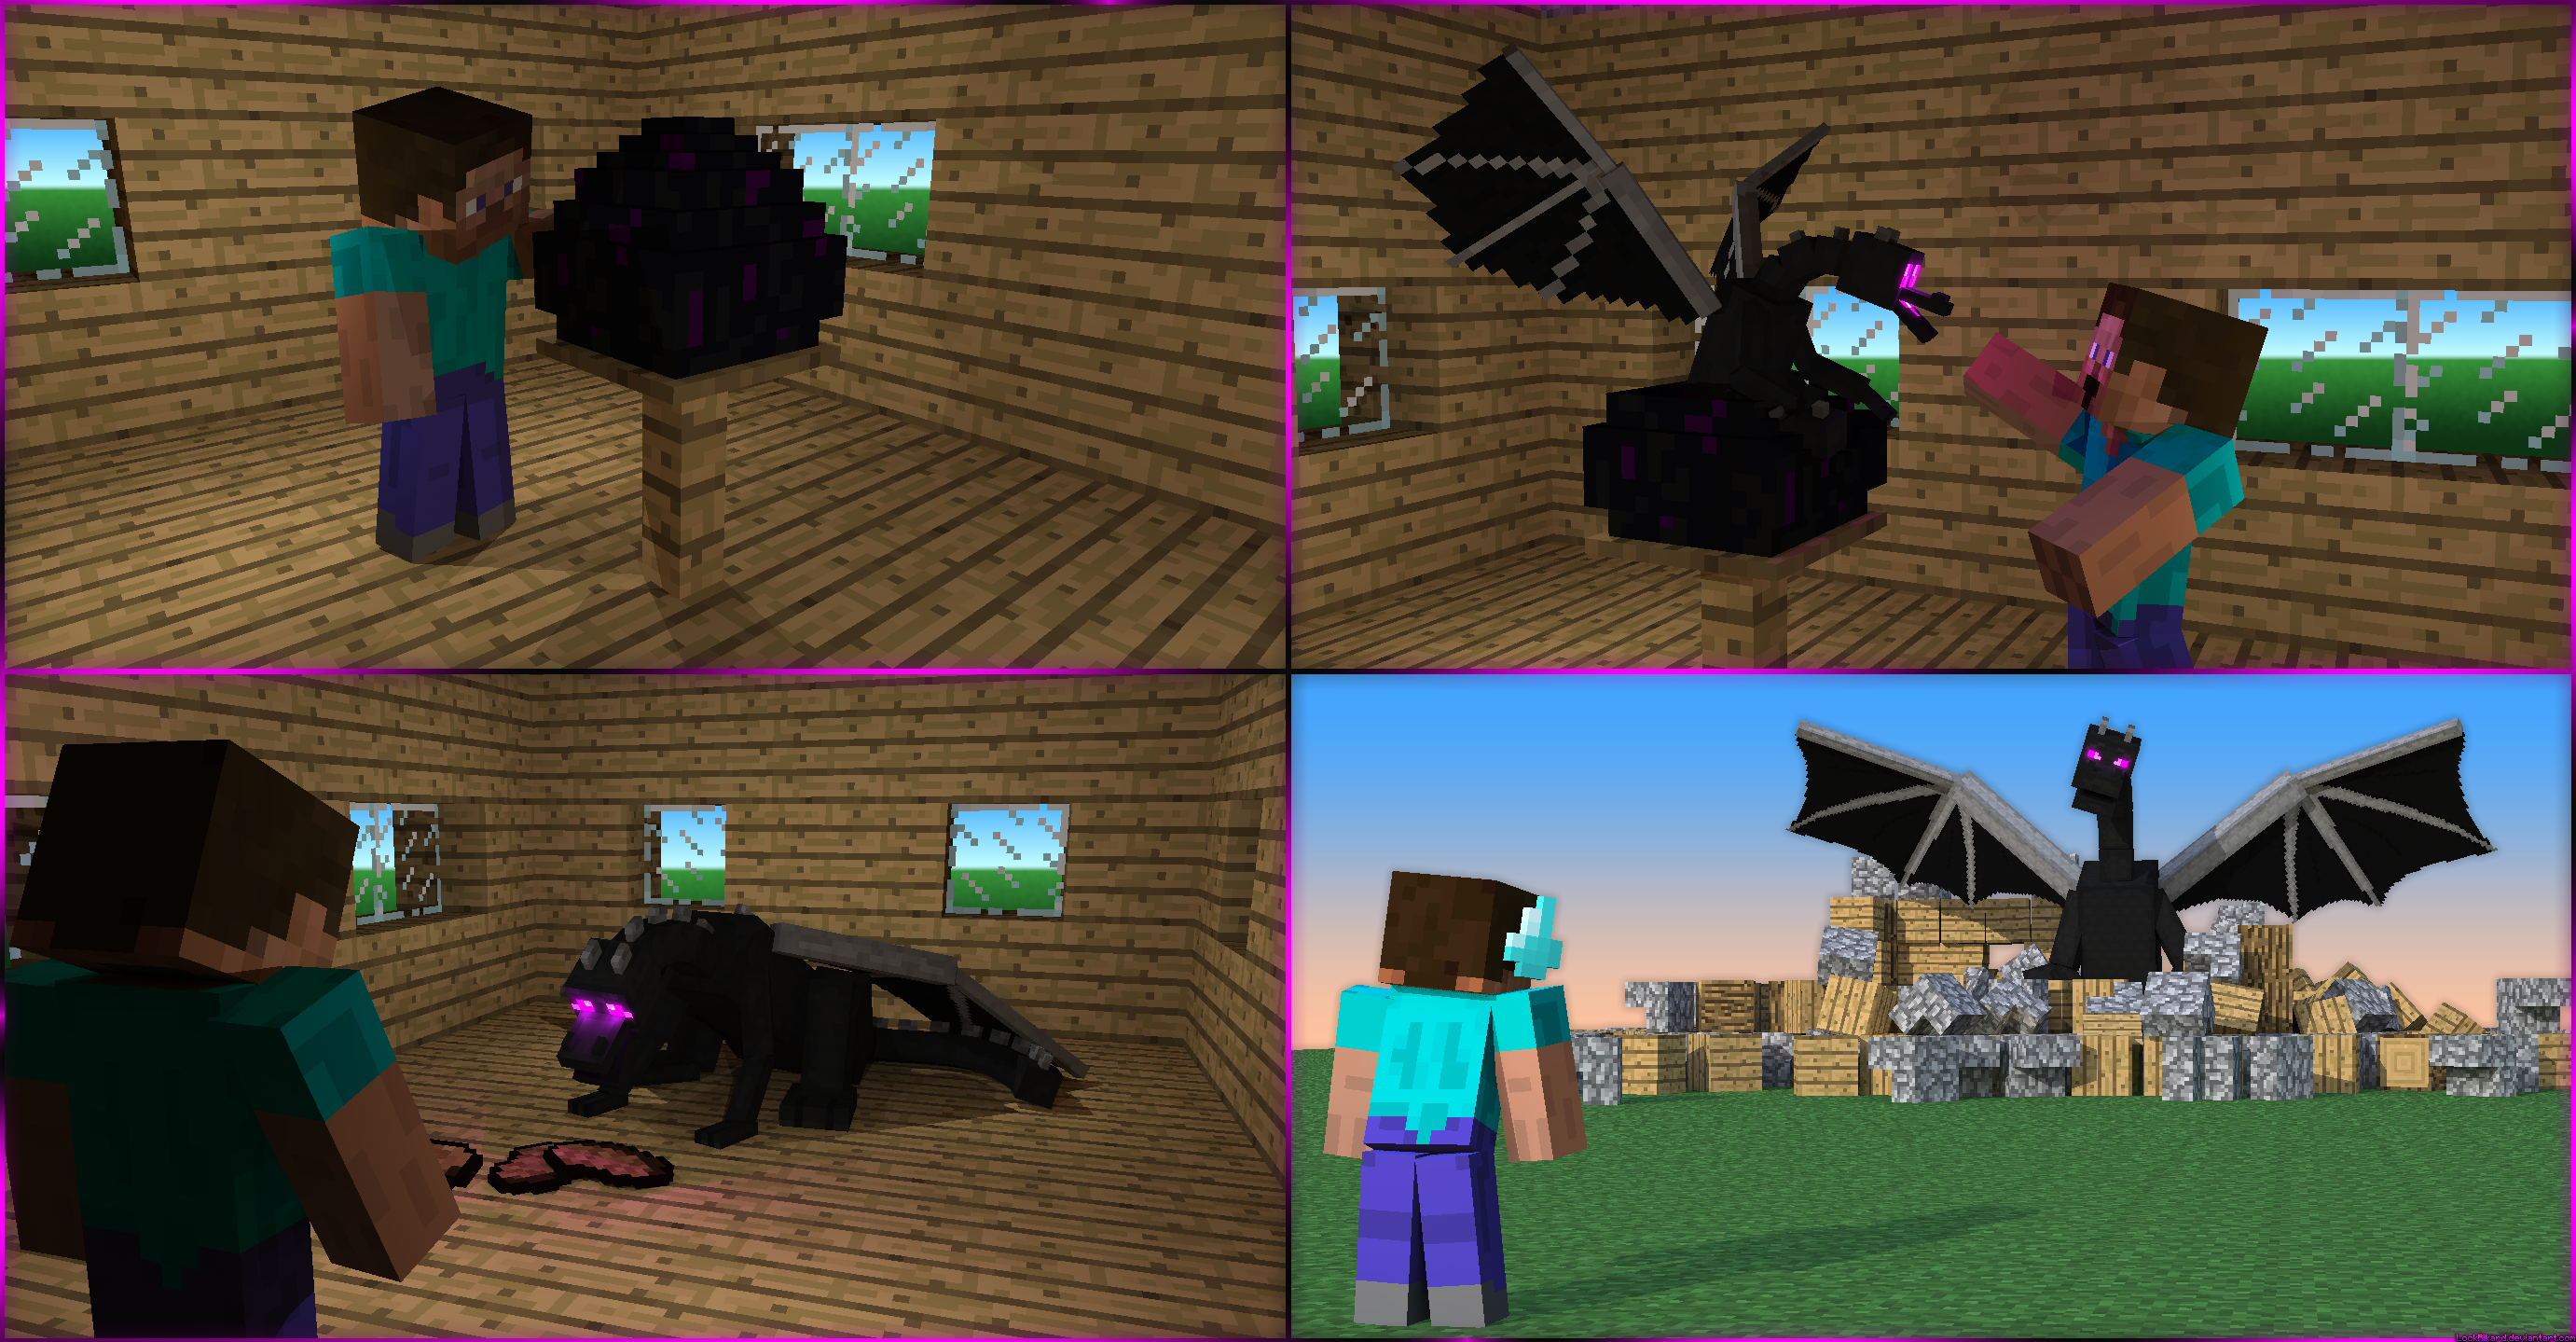 life with my pet ender dragon | minecraft | Pinterest